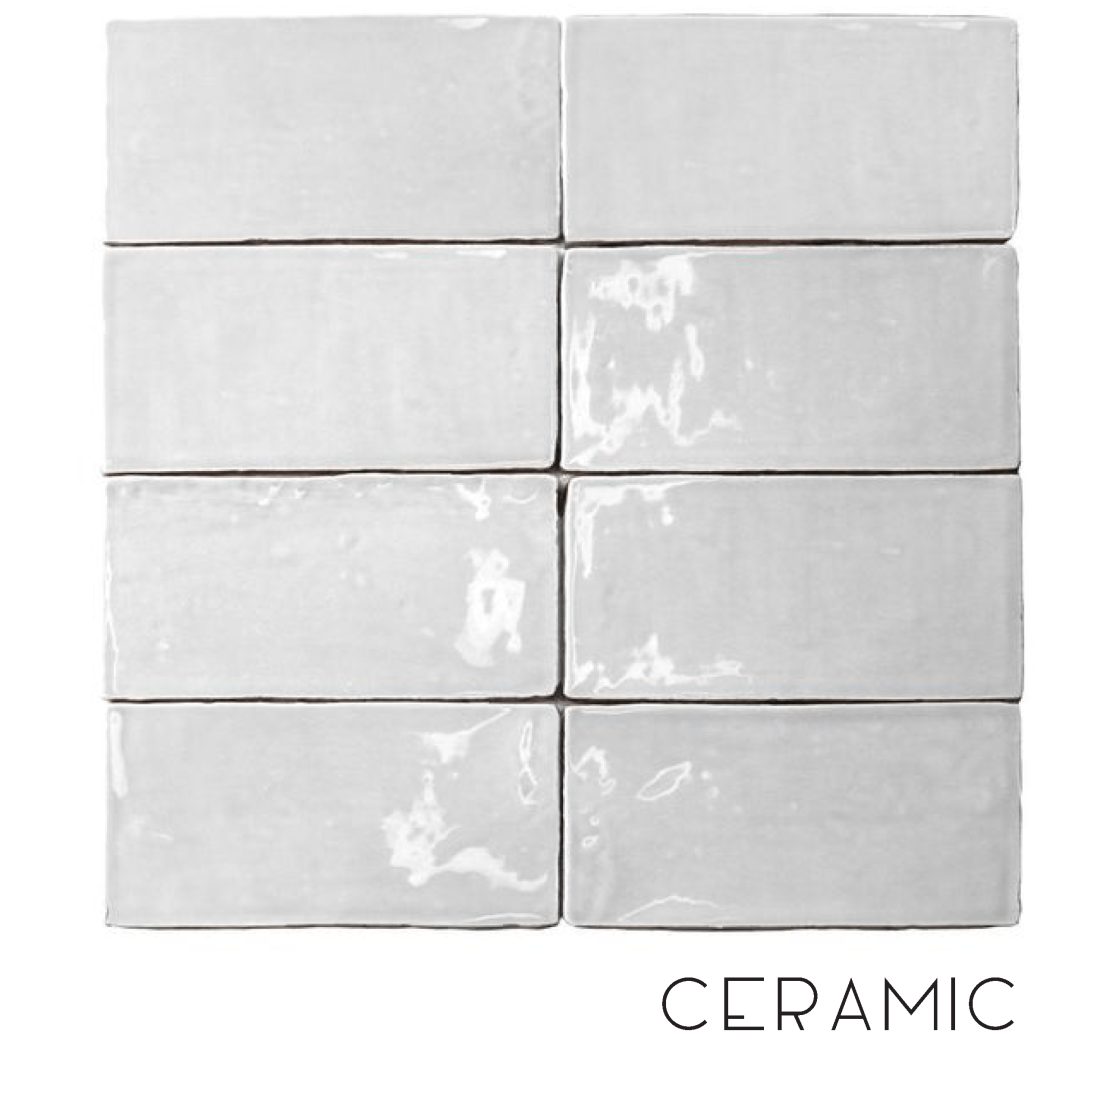 When to use ceramic tiles in a bathroom.